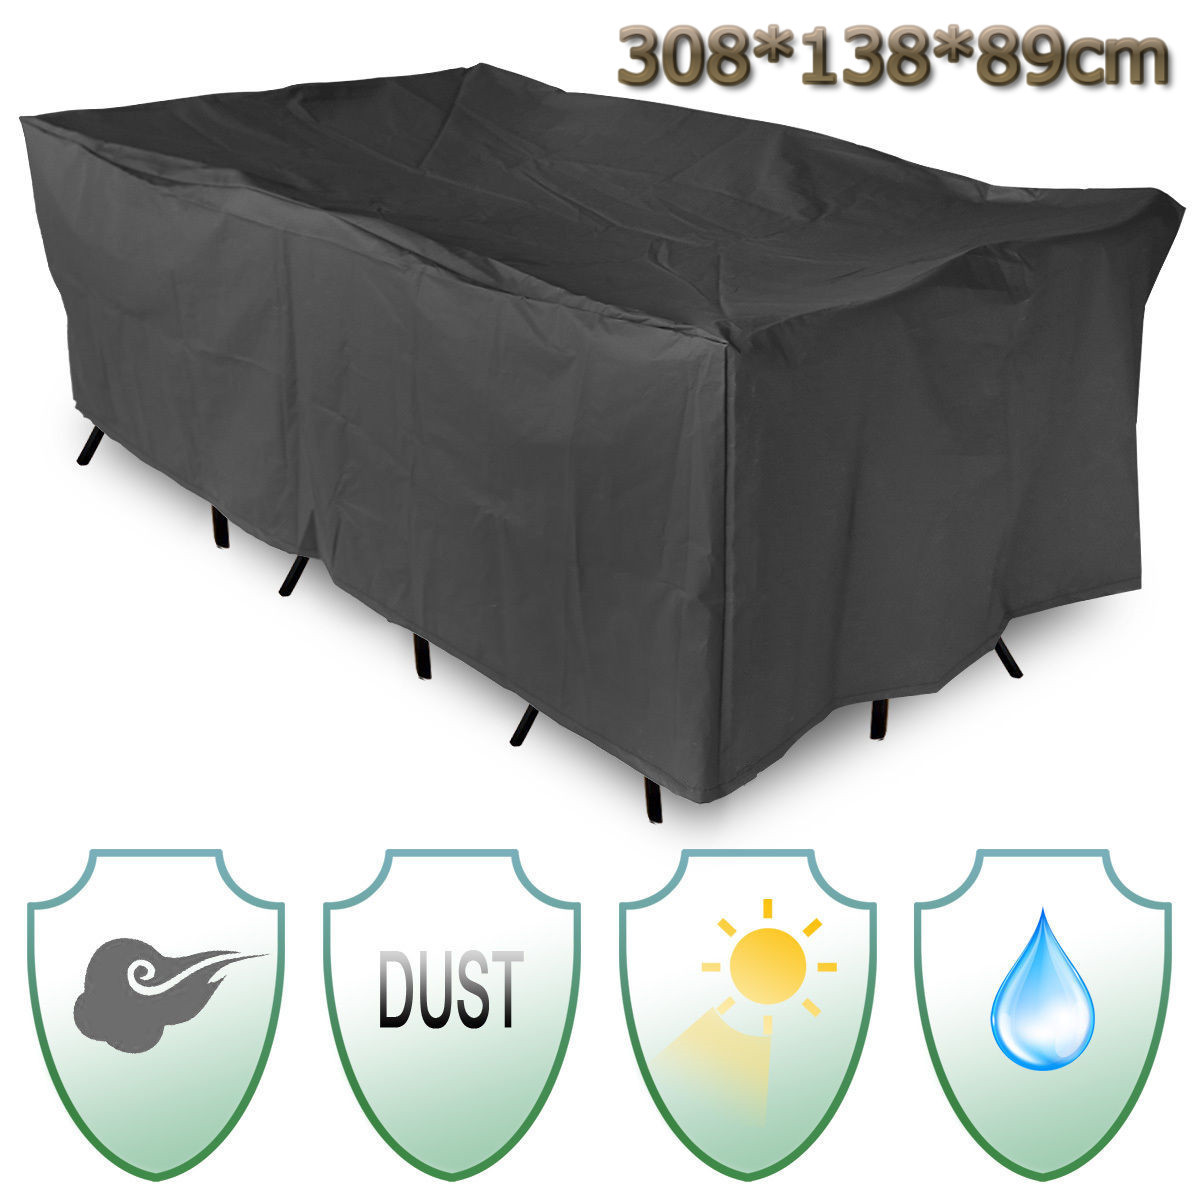 Waterproof Patio Garden Furniture Cover 308x138cm Chair Table Cover Rain  Dust UV Resistant Table Cloth Home Textiles Supplies